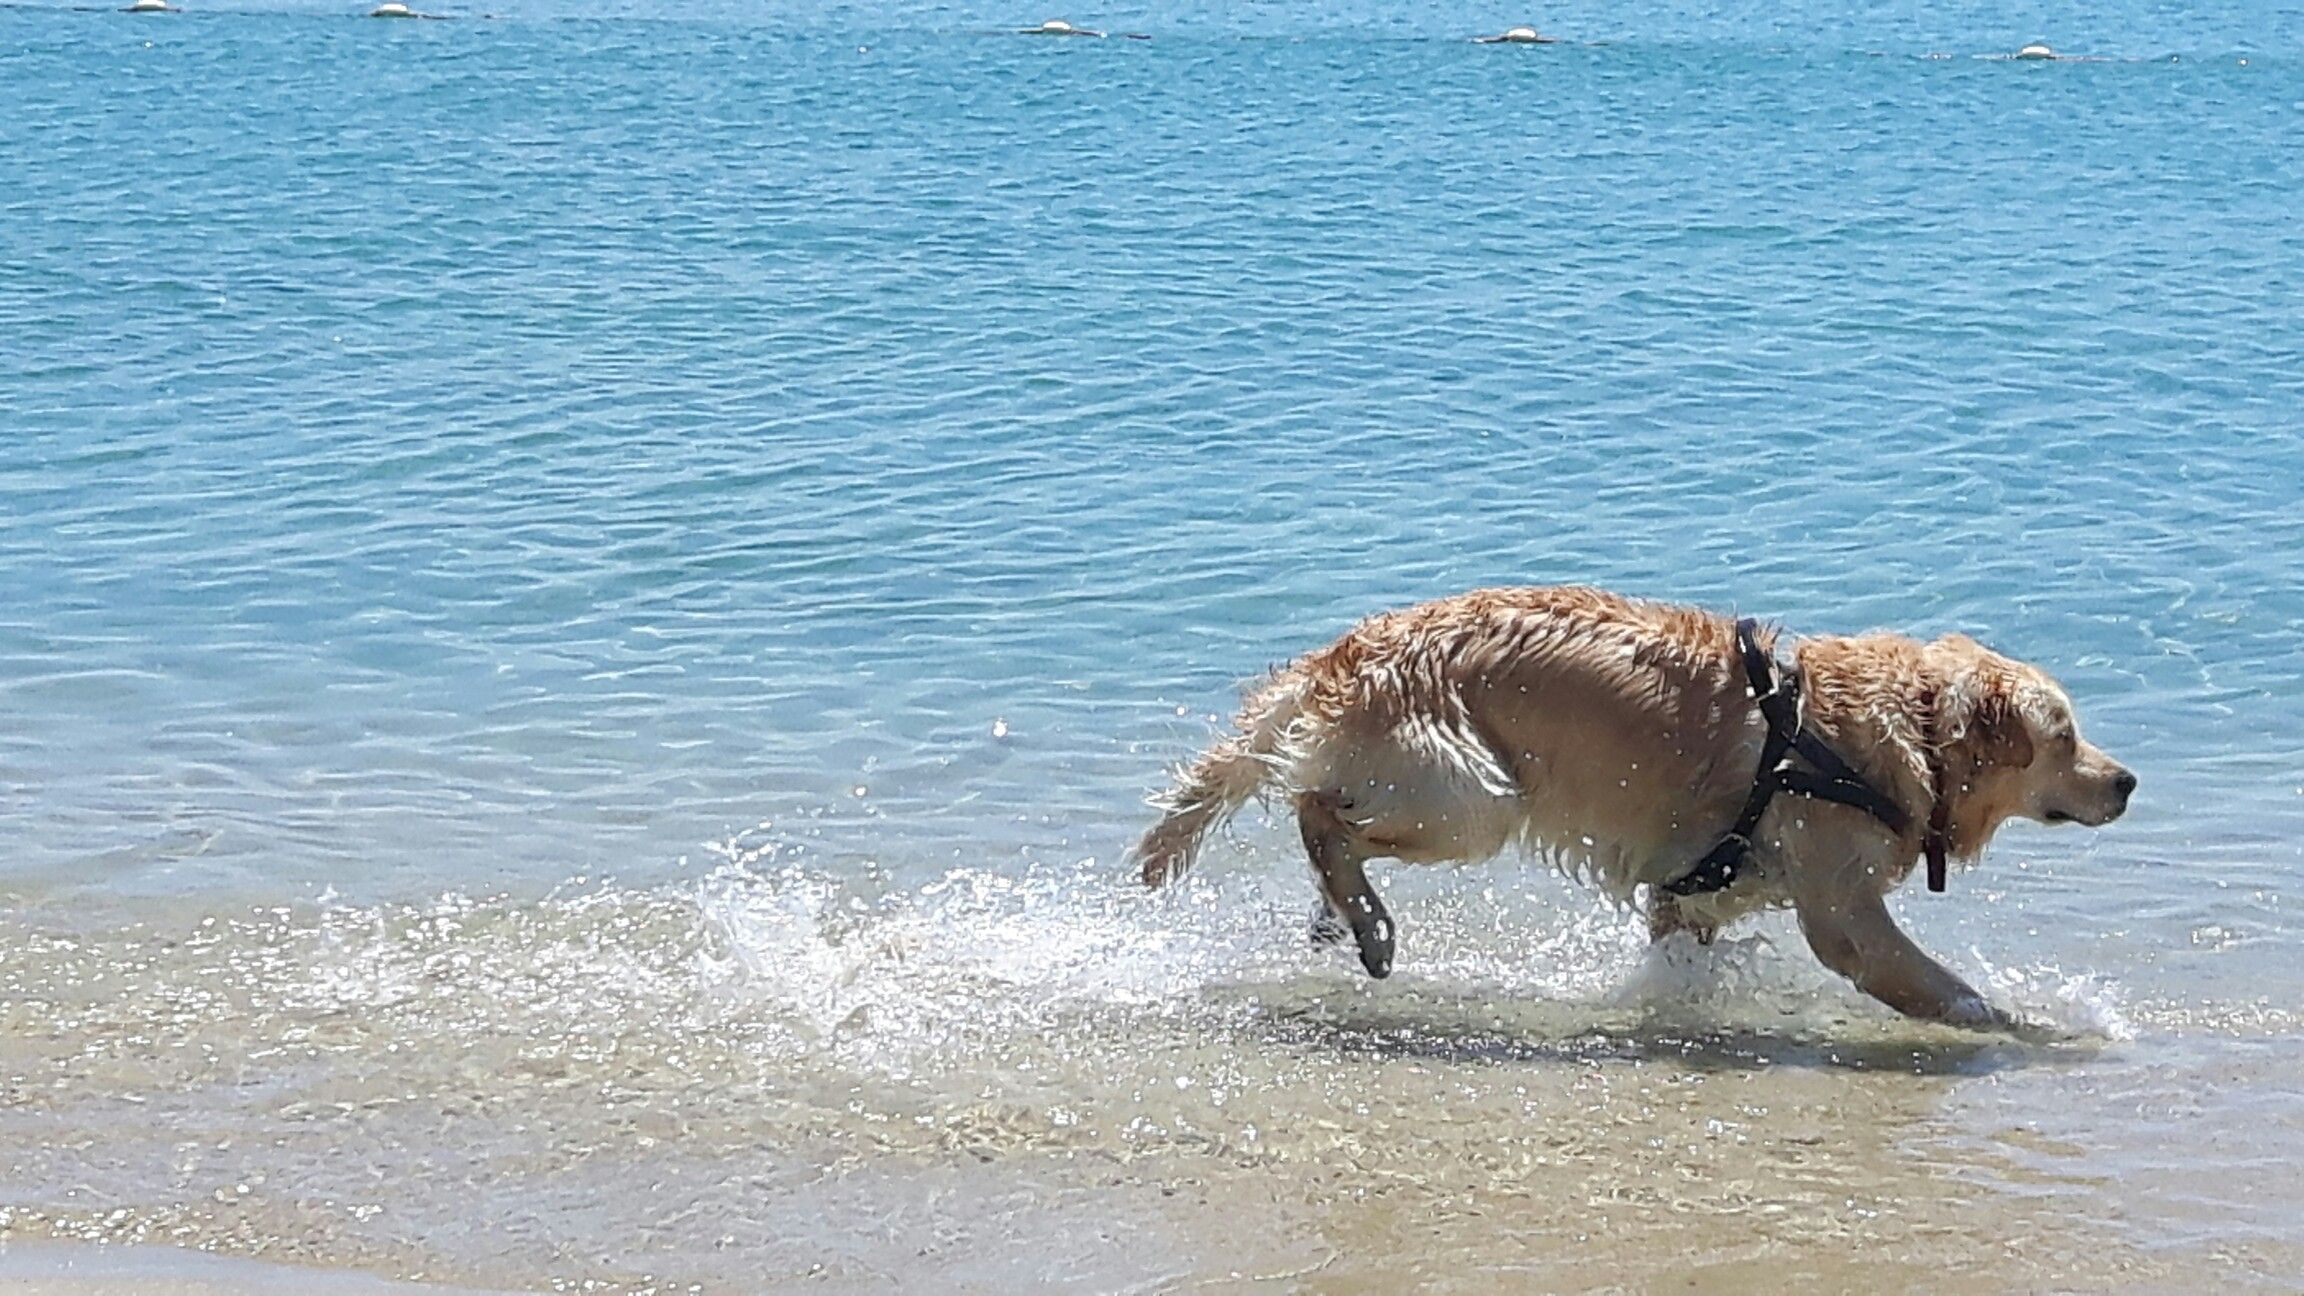 Scoobydoo in The sea